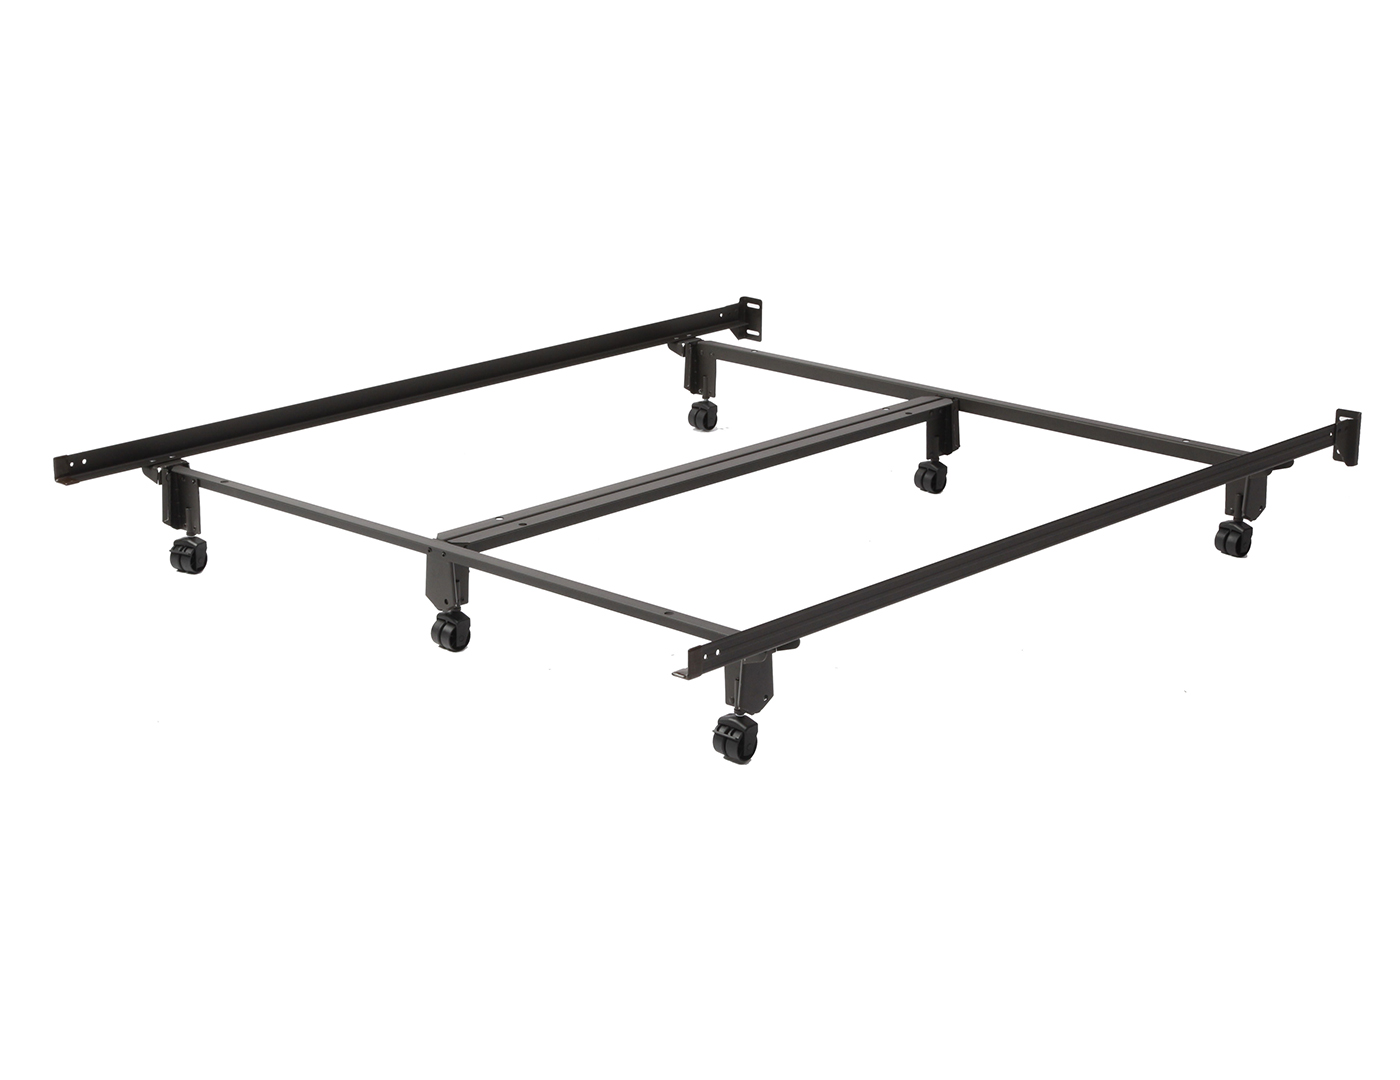 craftlock premium queen bed frame